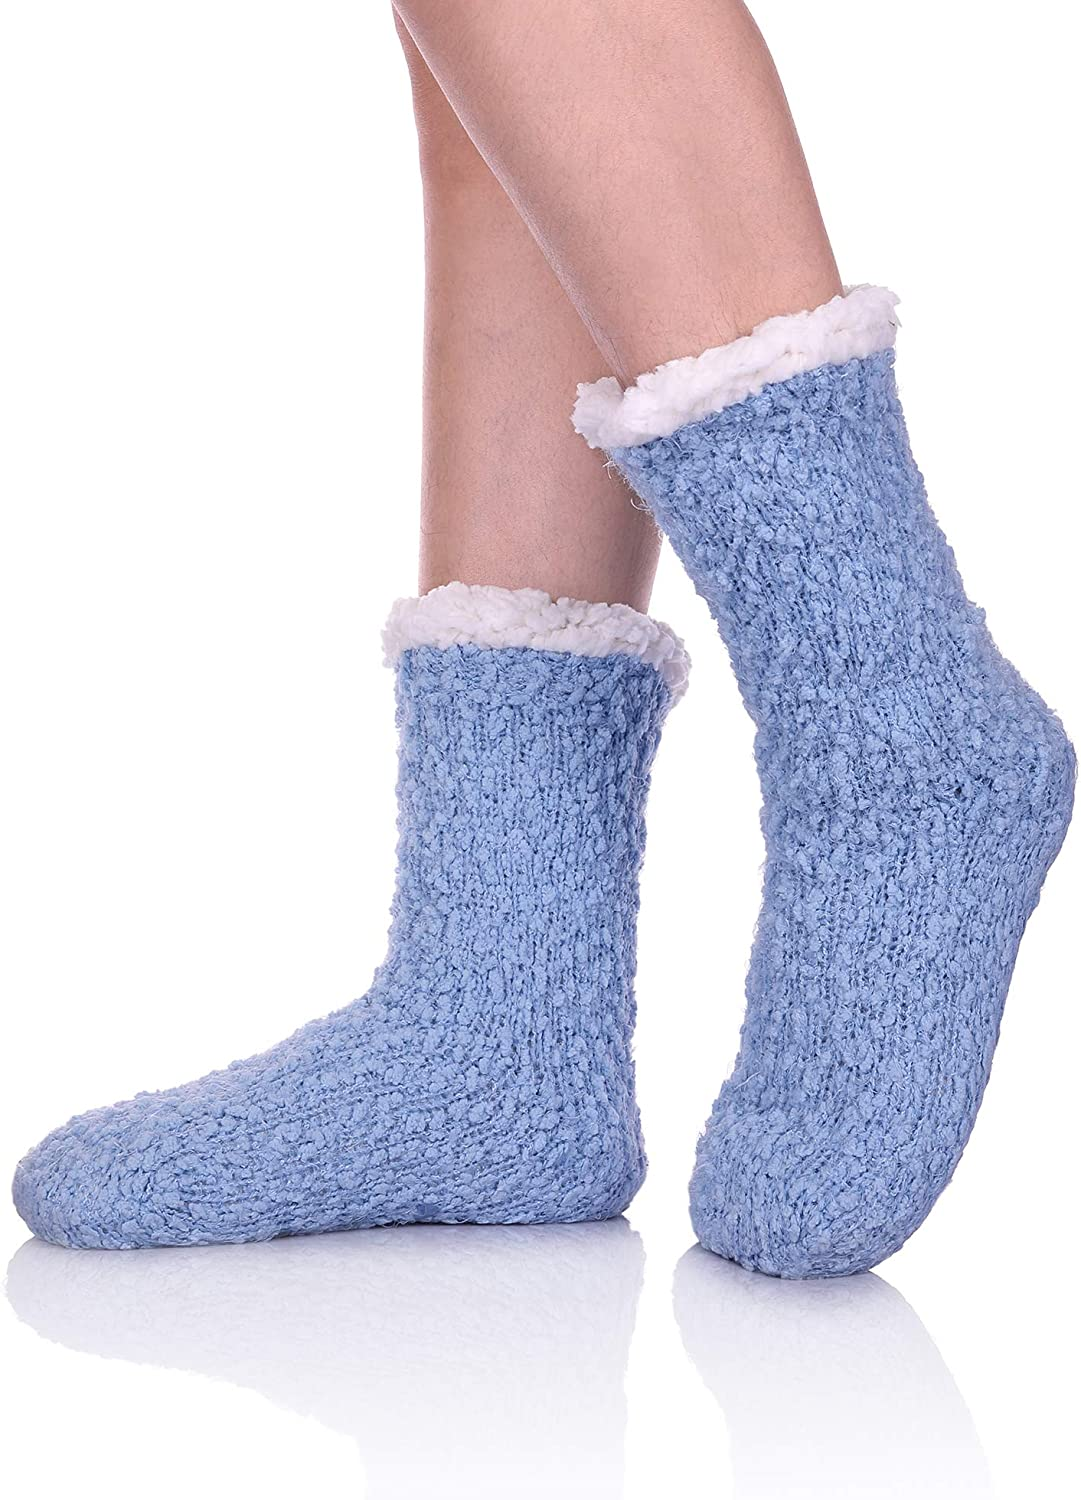 YEBING Women Slipper Socks Soft and Warm Faux Shearling Lining and Non Skid Tread Sole Great Plush Slip On House Slippers